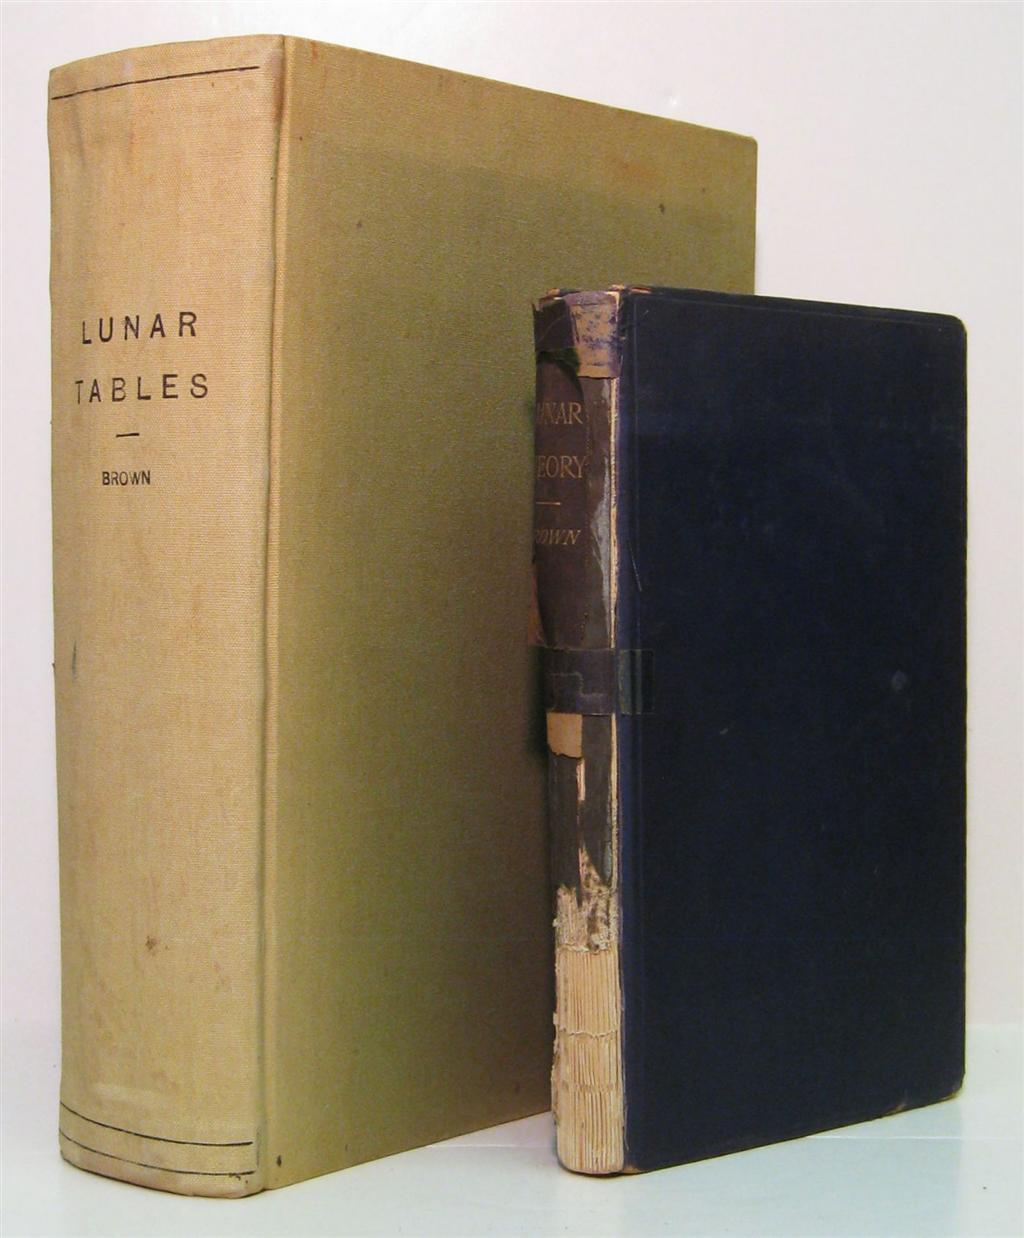 BROWN-ERNEST-WILLIAM-An-Introductory-Treatise-on-the-Lunar-T